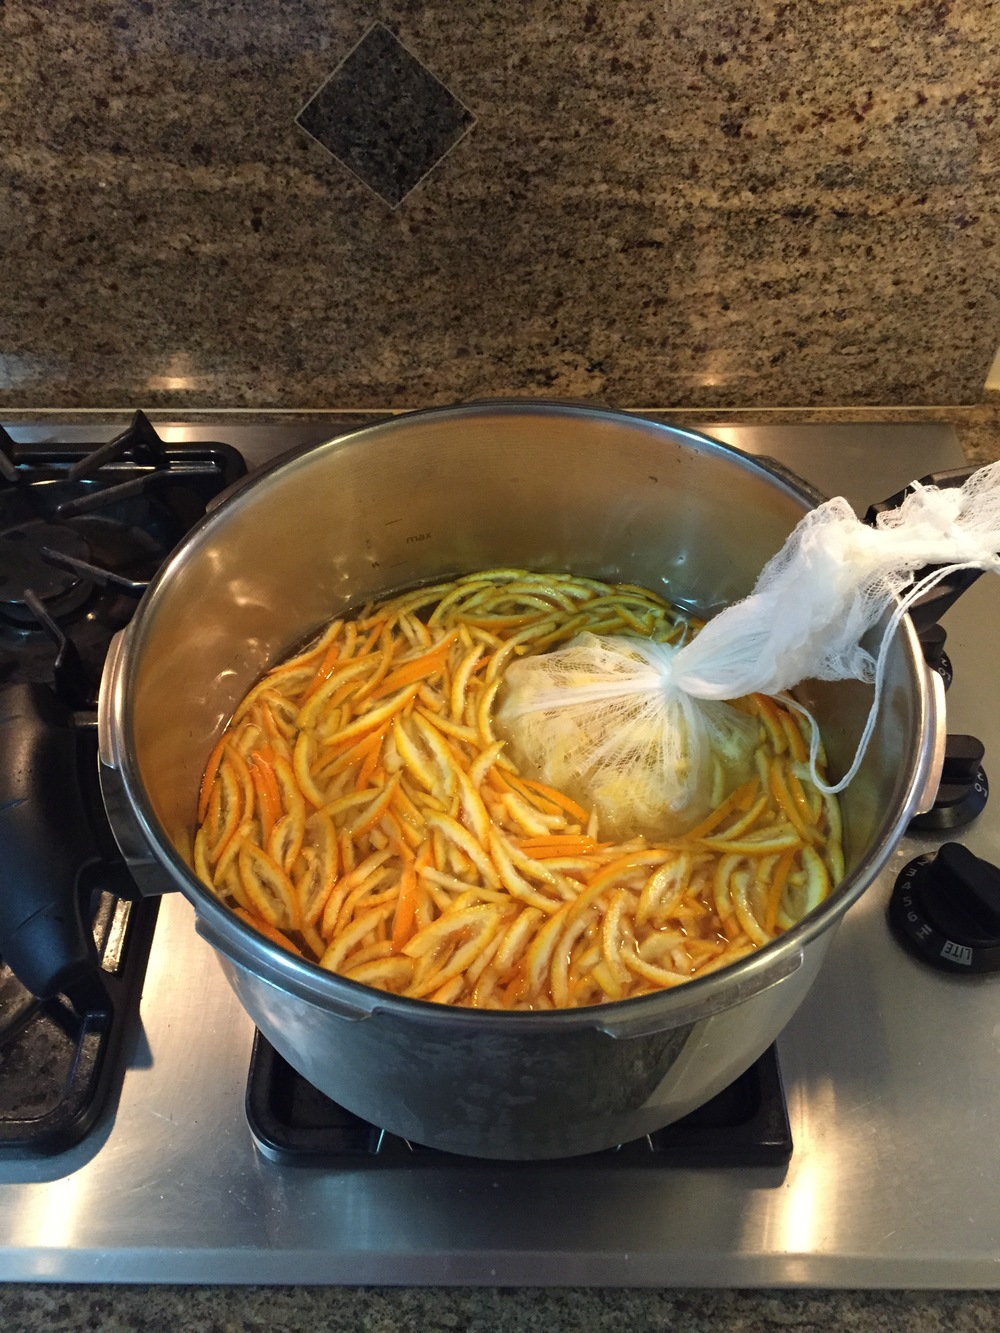 Emma's marmalade in the making